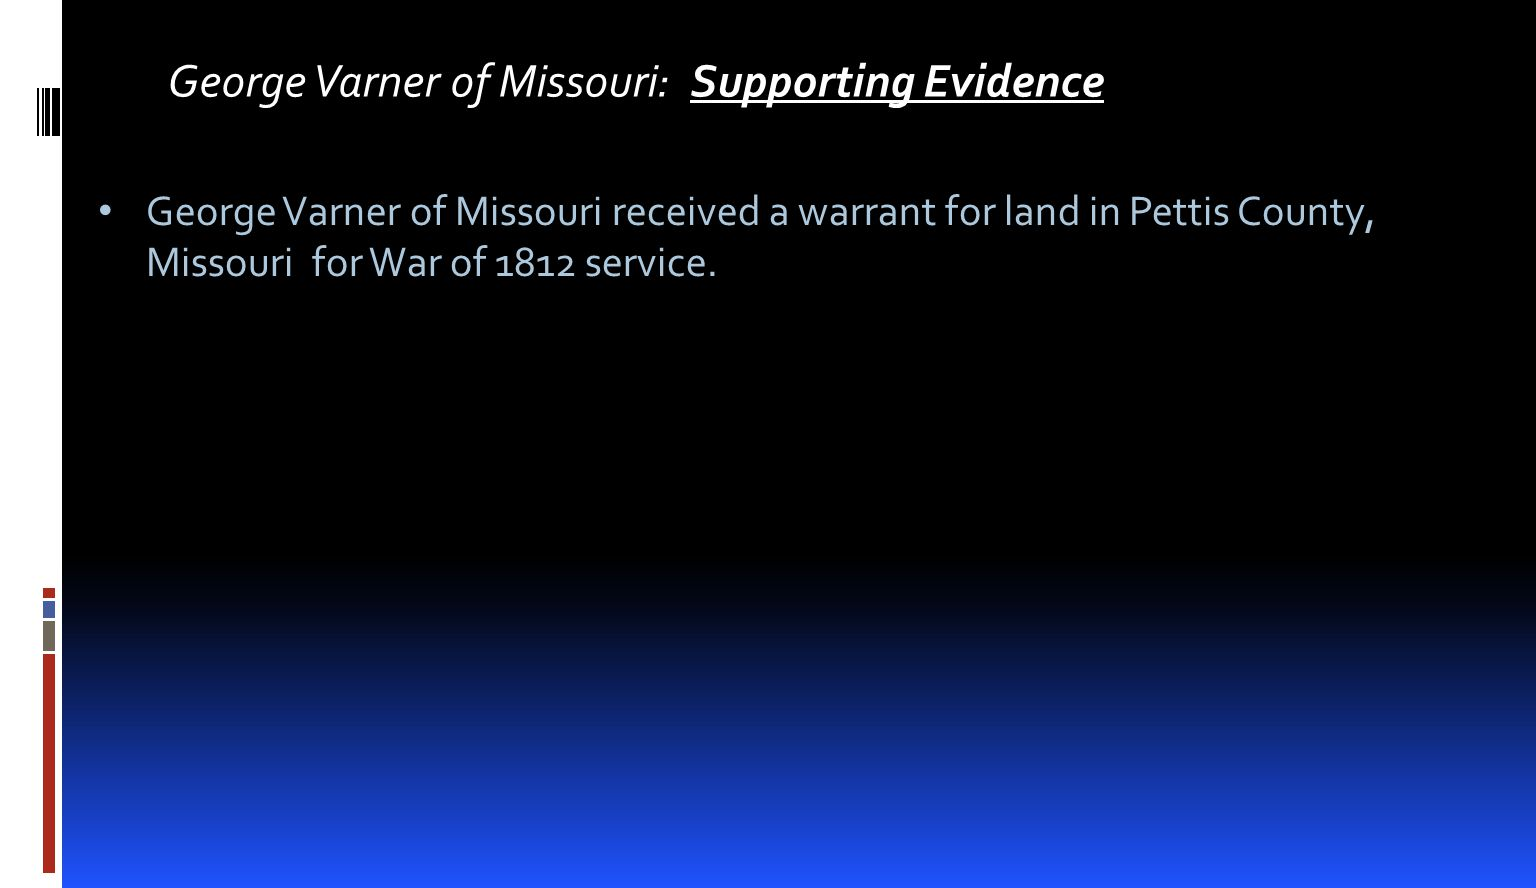 George Varner of Missouri: Supporting Evidence George Varner of Missouri received a warrant for land in Pettis County, Missouri for War of 1812 service.